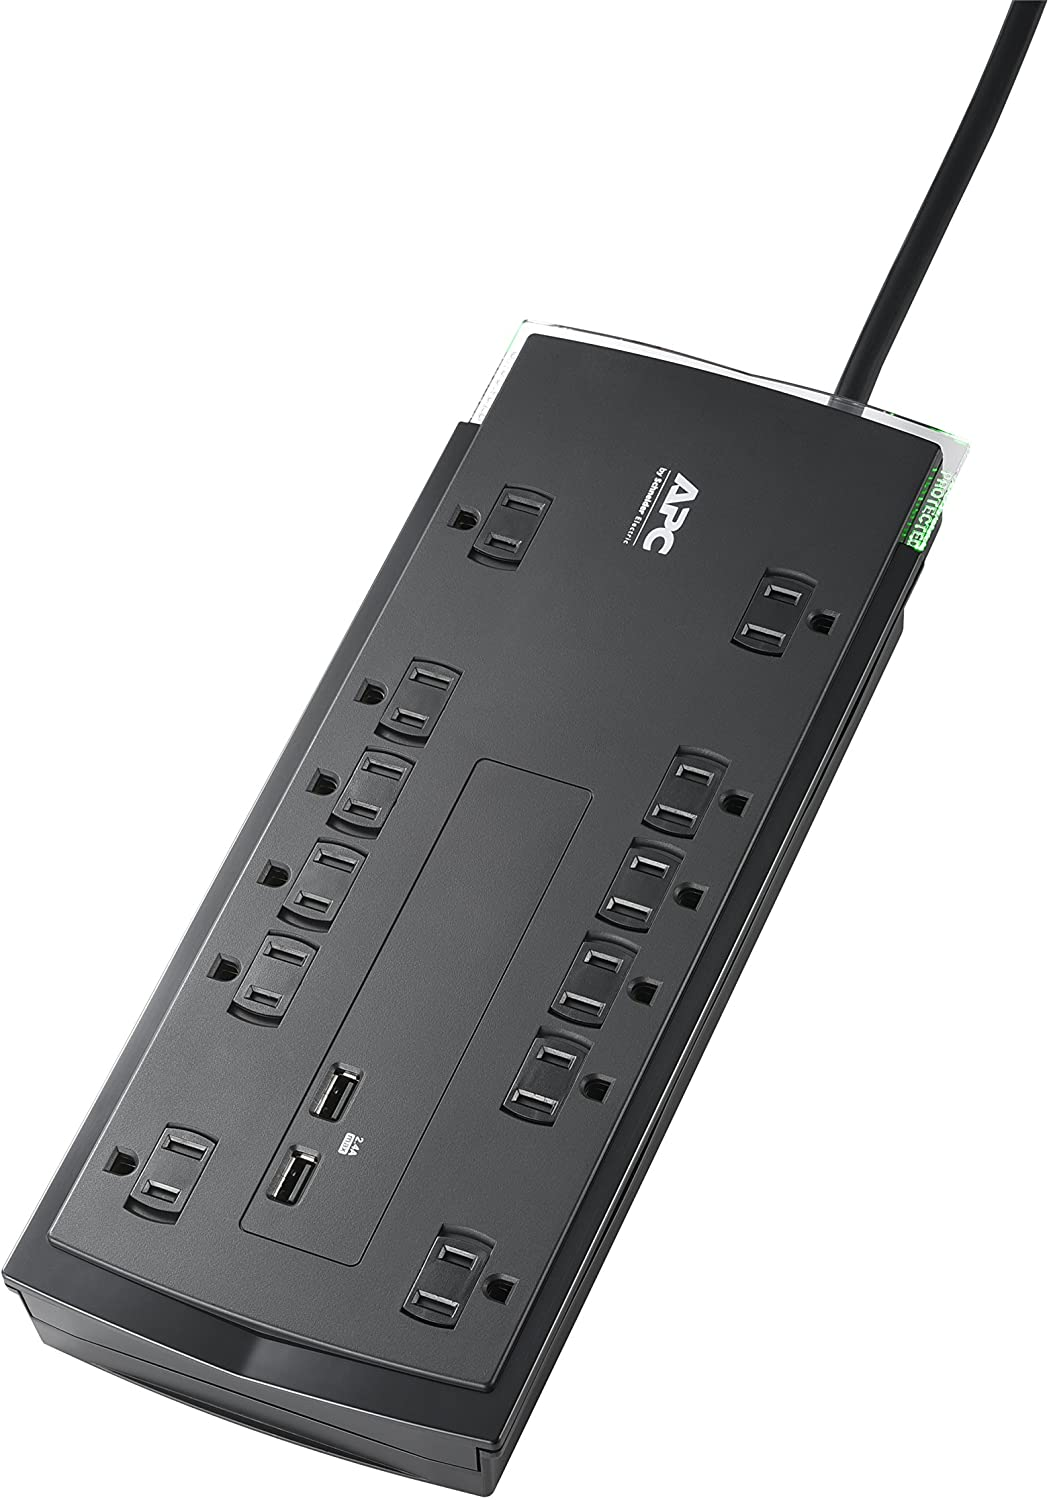 APC P12U2 Surge Protector Power Strip with USB Ports